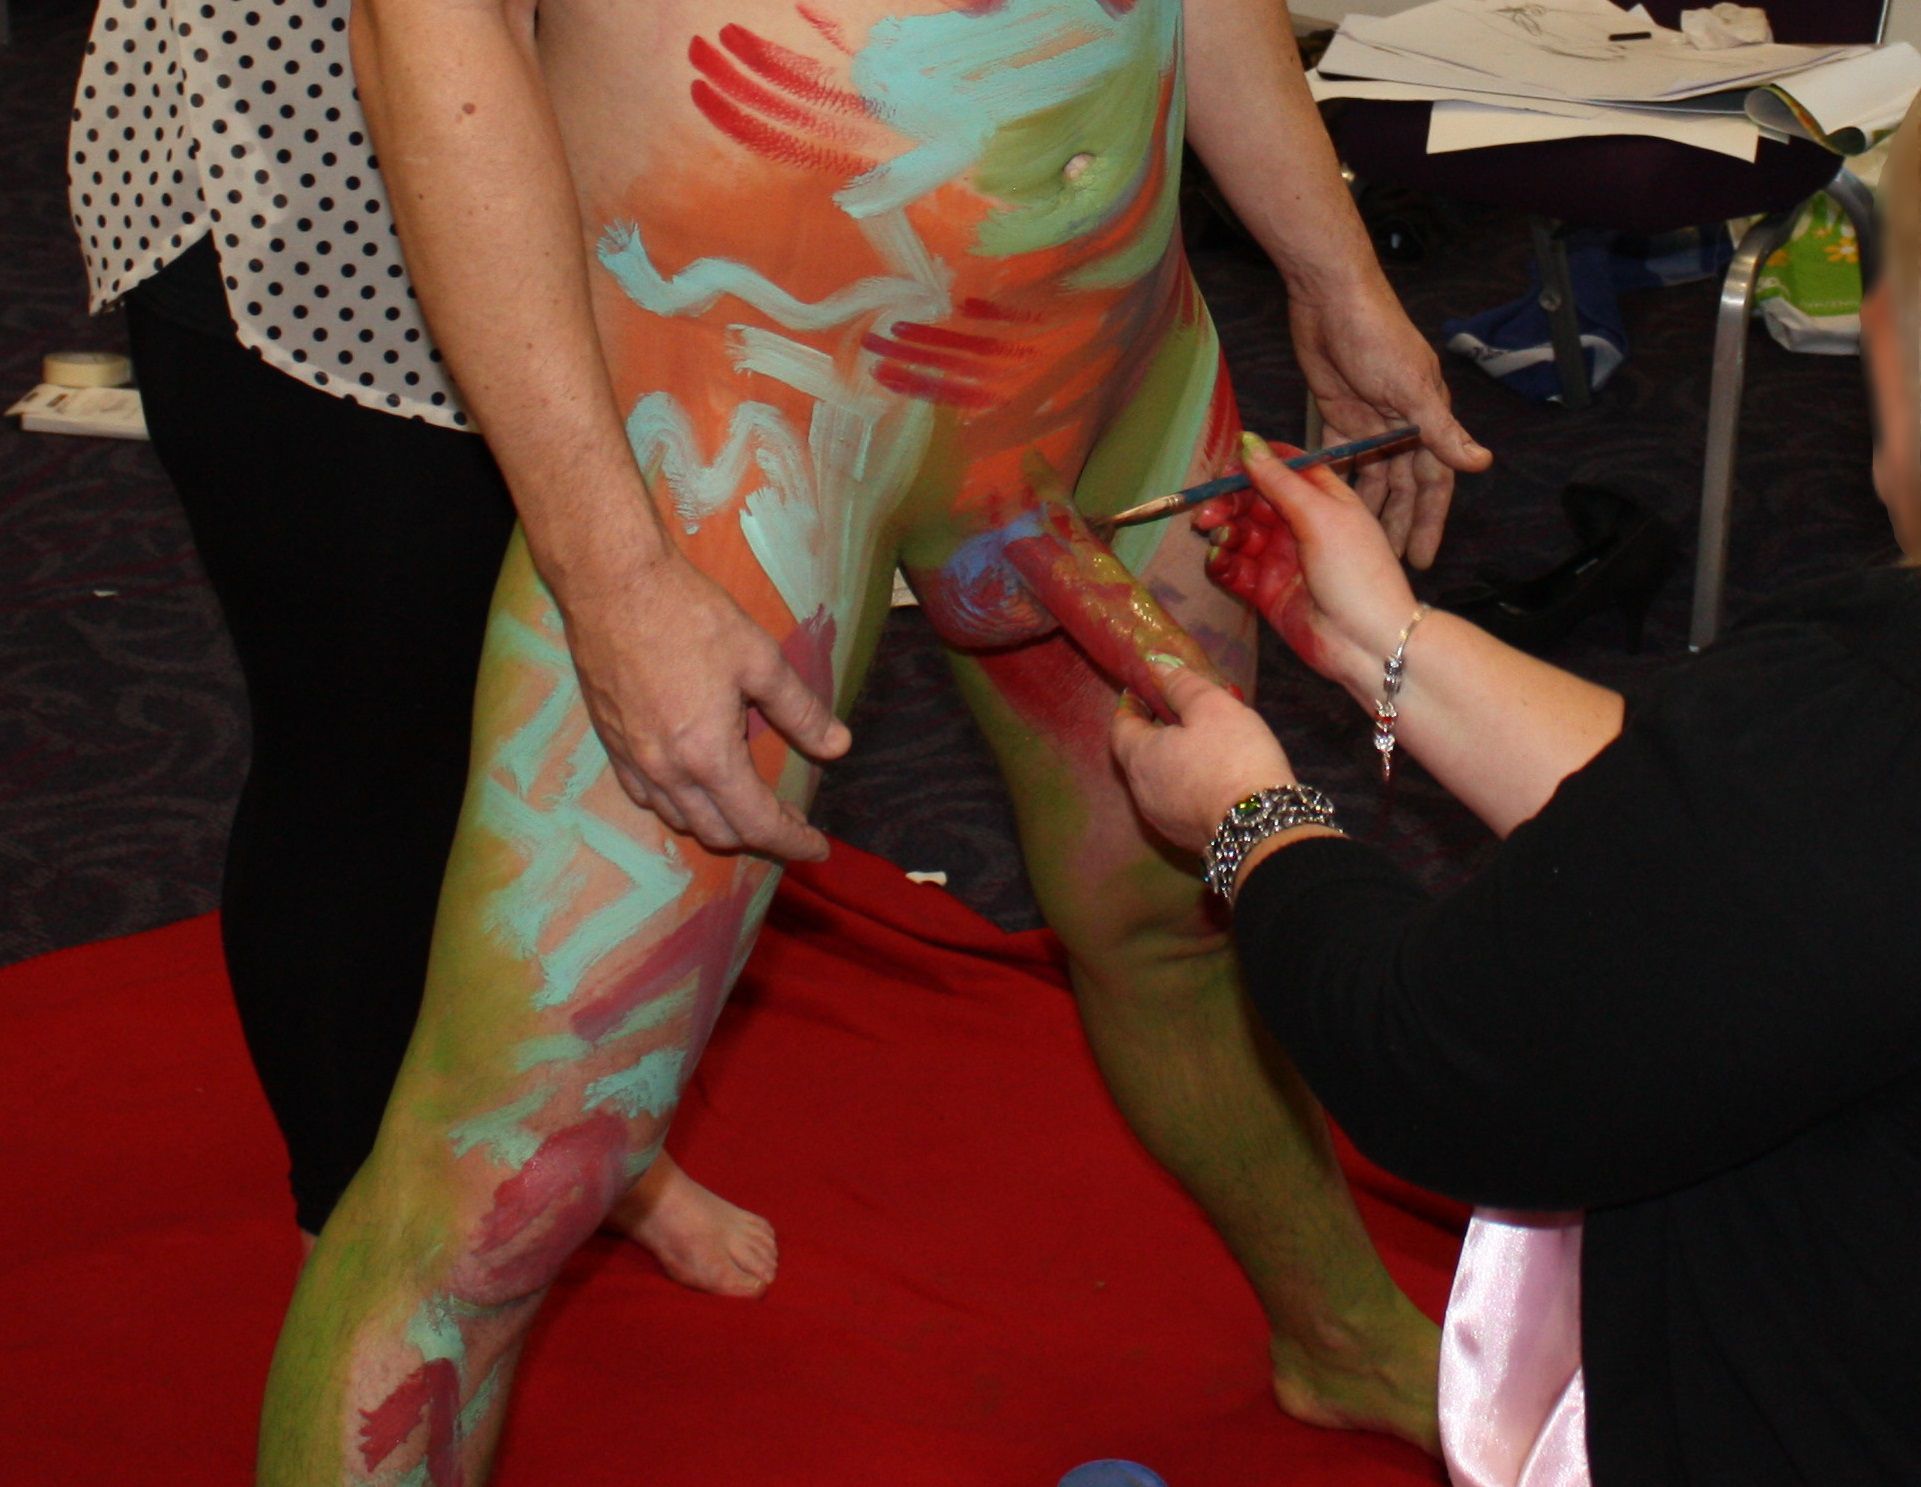 Something also Cfnm body painting the valuable